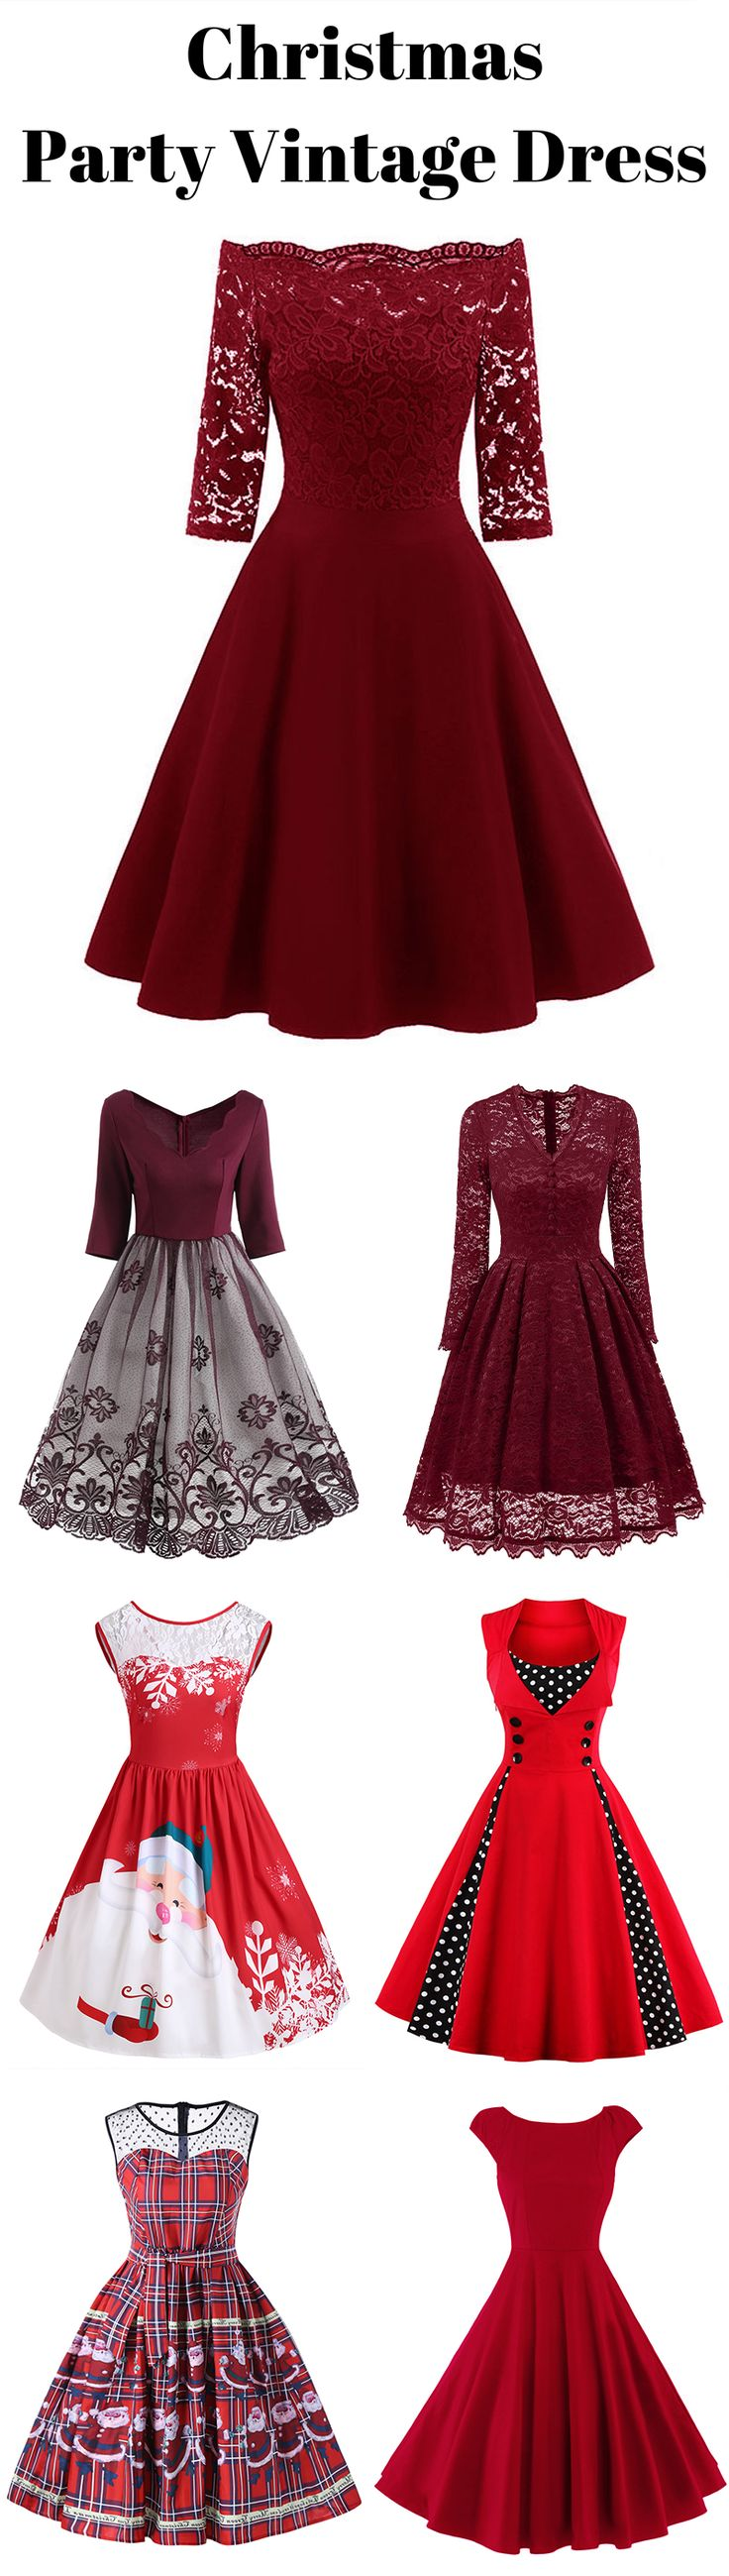 Stunning Christmas Party Vintage Dress   Up to 88% off   #Christmas #Vintagedress #PromDress #partydress